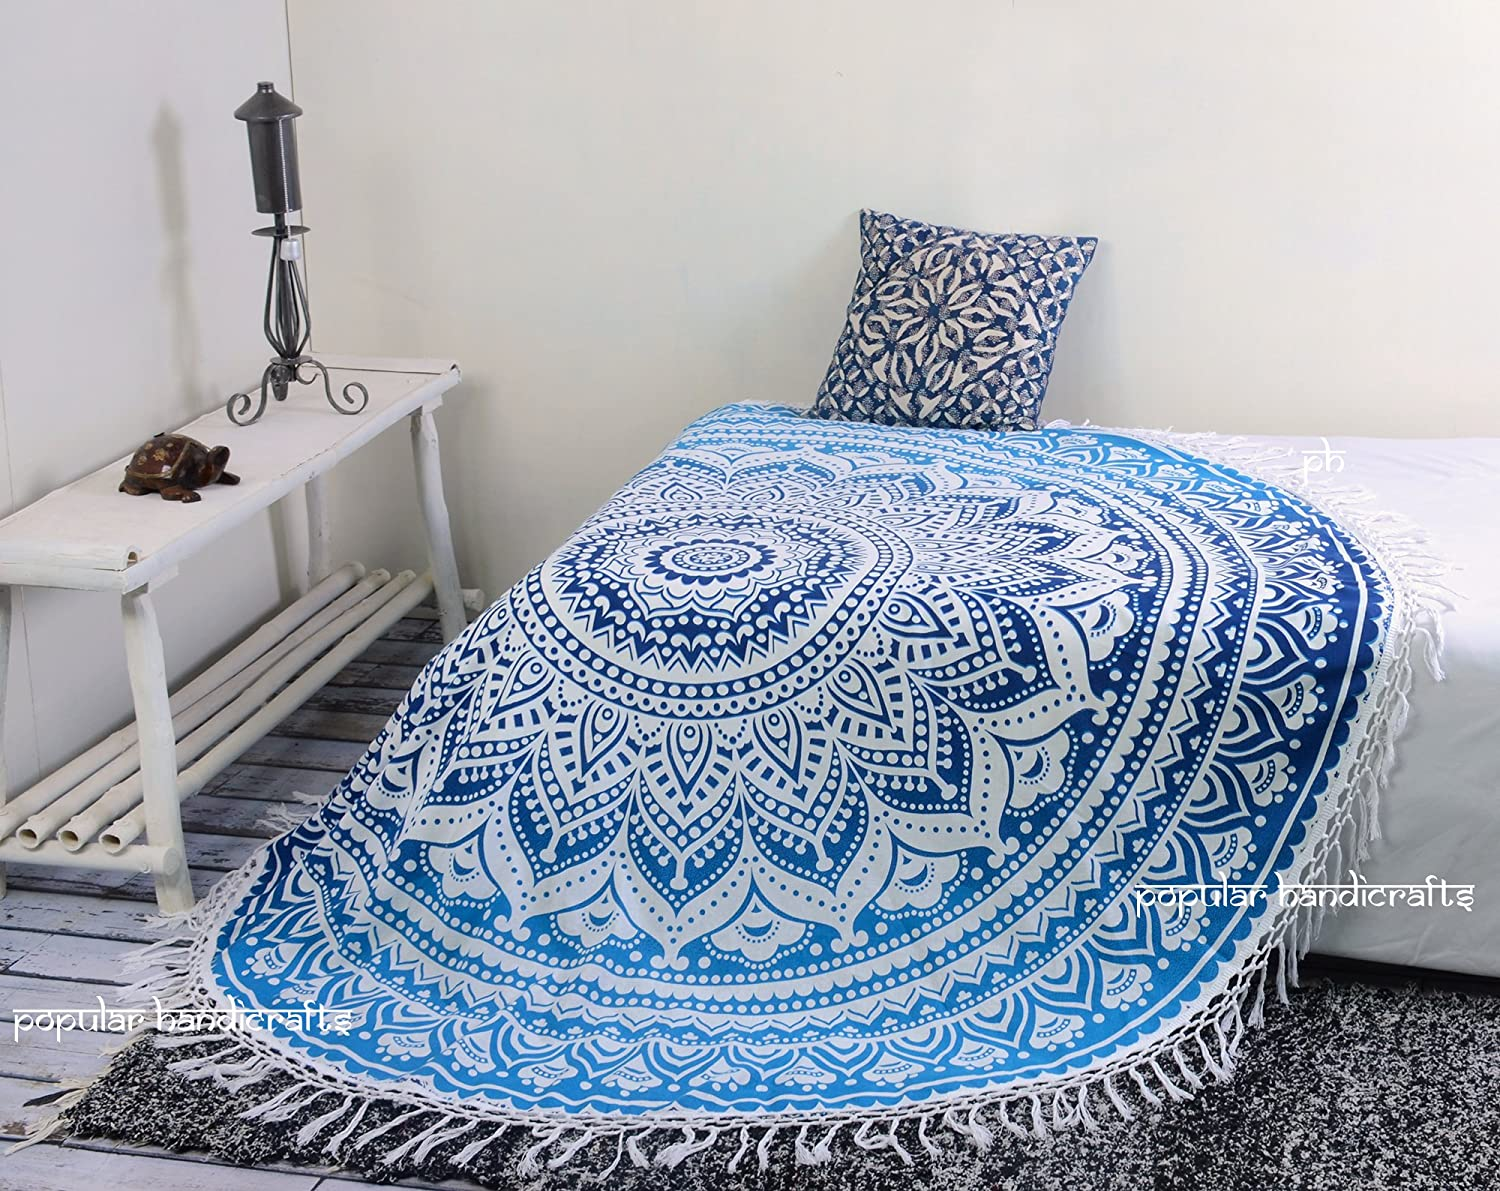 Popular Handicrafts Kp758 Tapestry Round Ombre Mandala Roundie Beach Throw Indian Hippie Tapestry Wall Hanging Décor Urban Tapestry Round Table Cloth 70